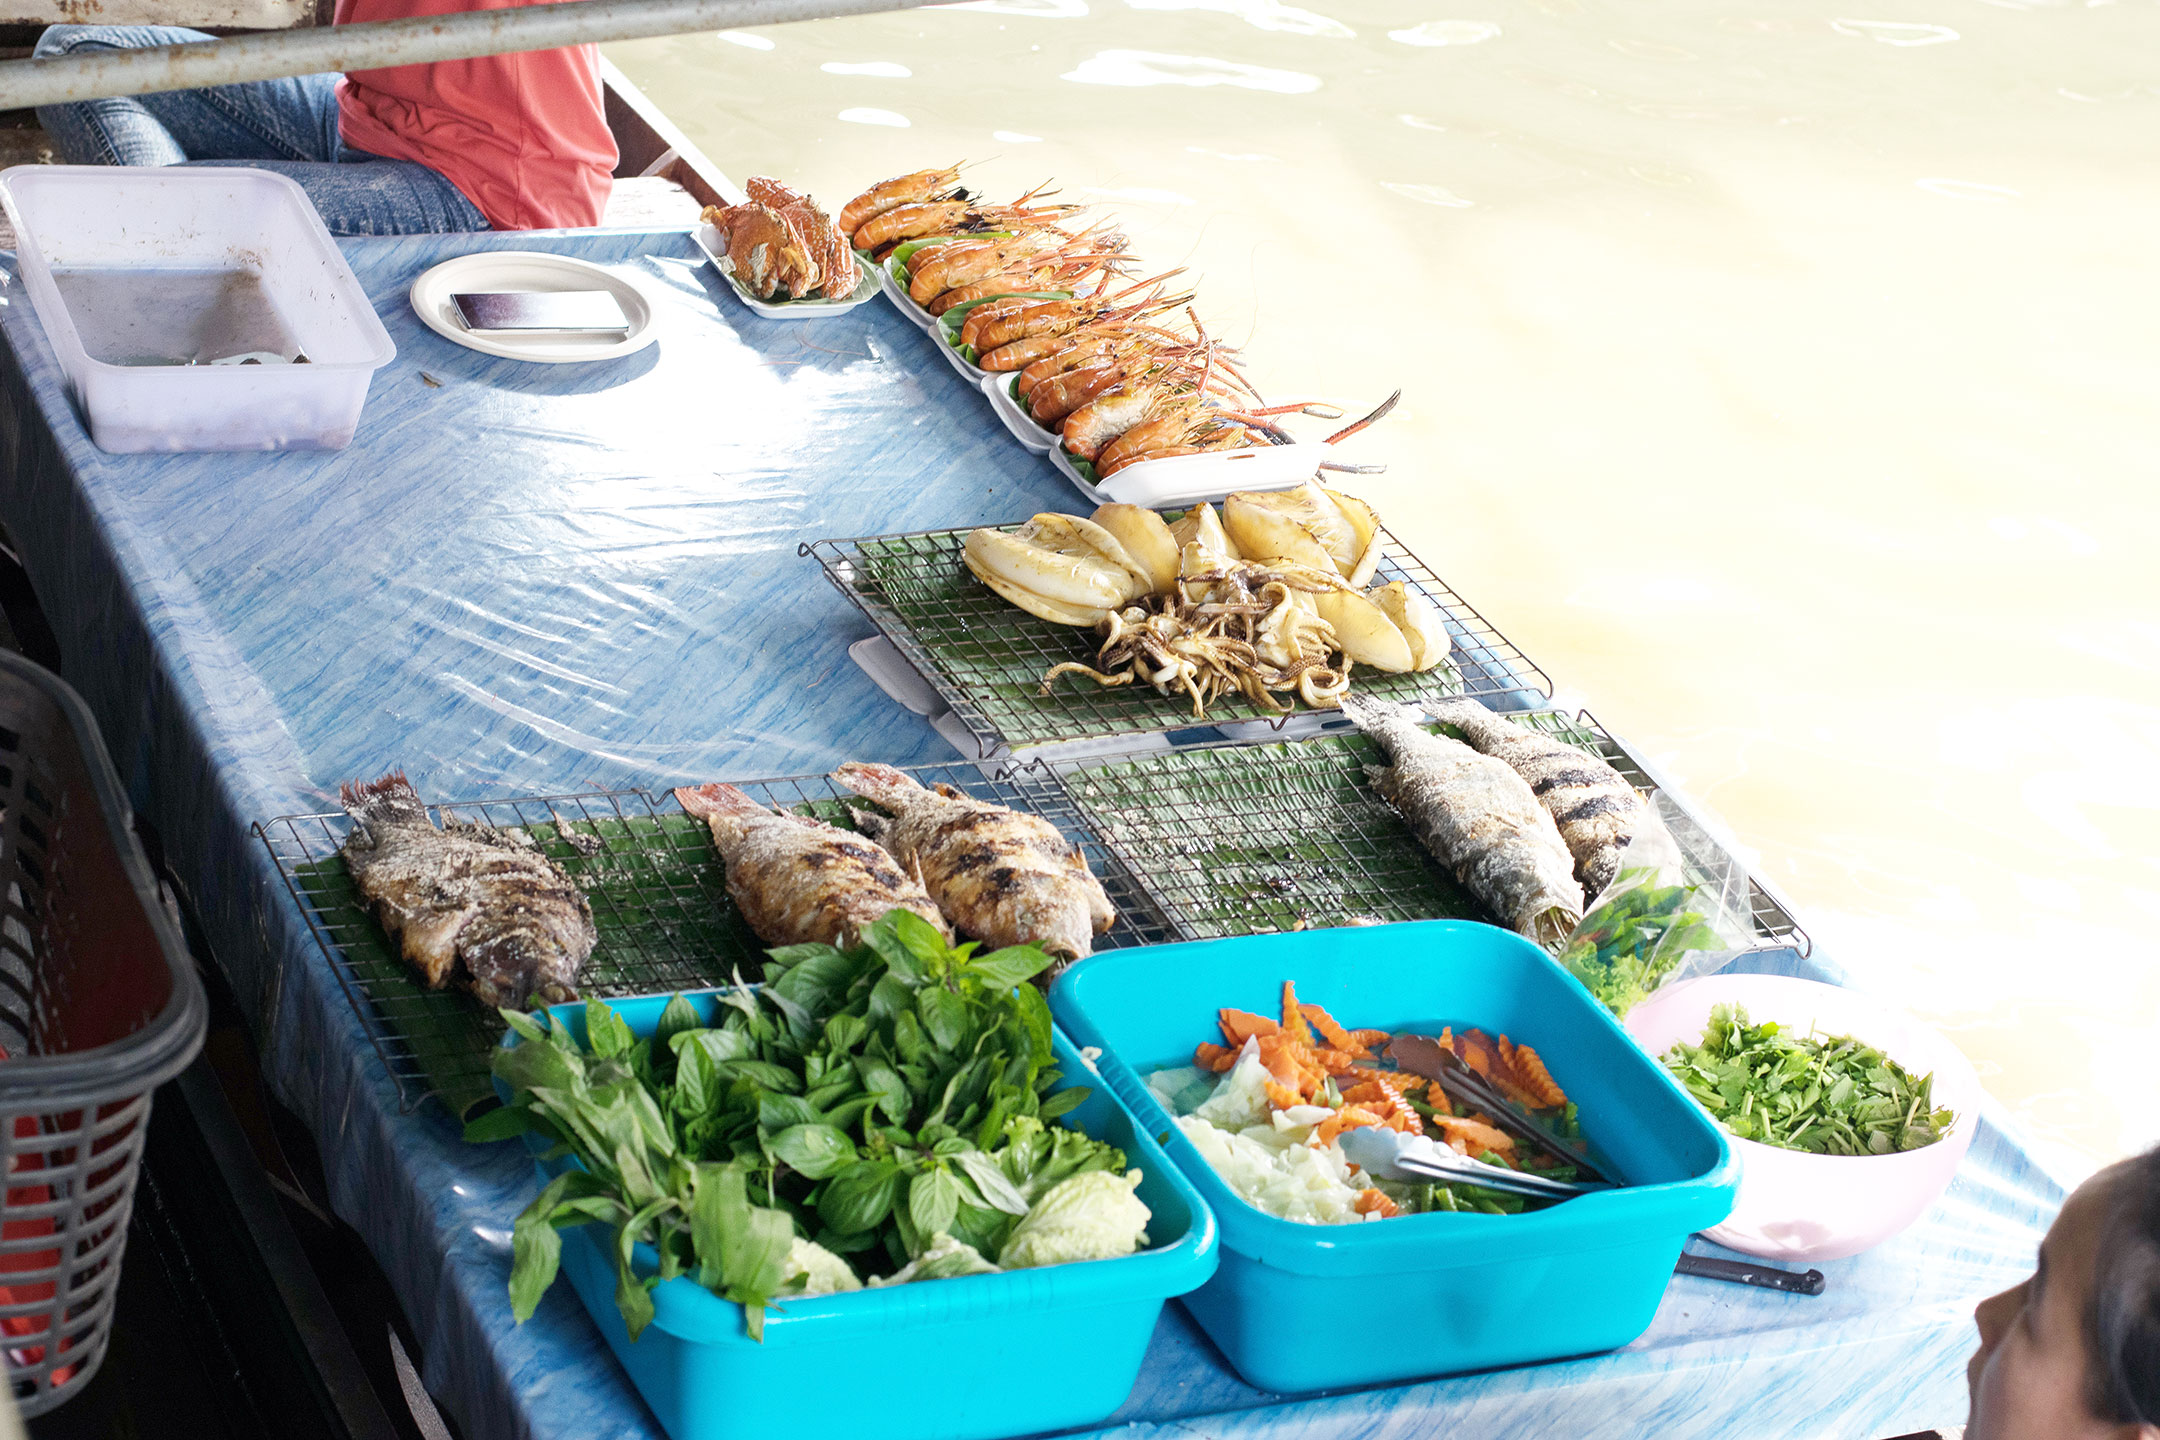 Freshly roasted seafood and ingredients by the river.